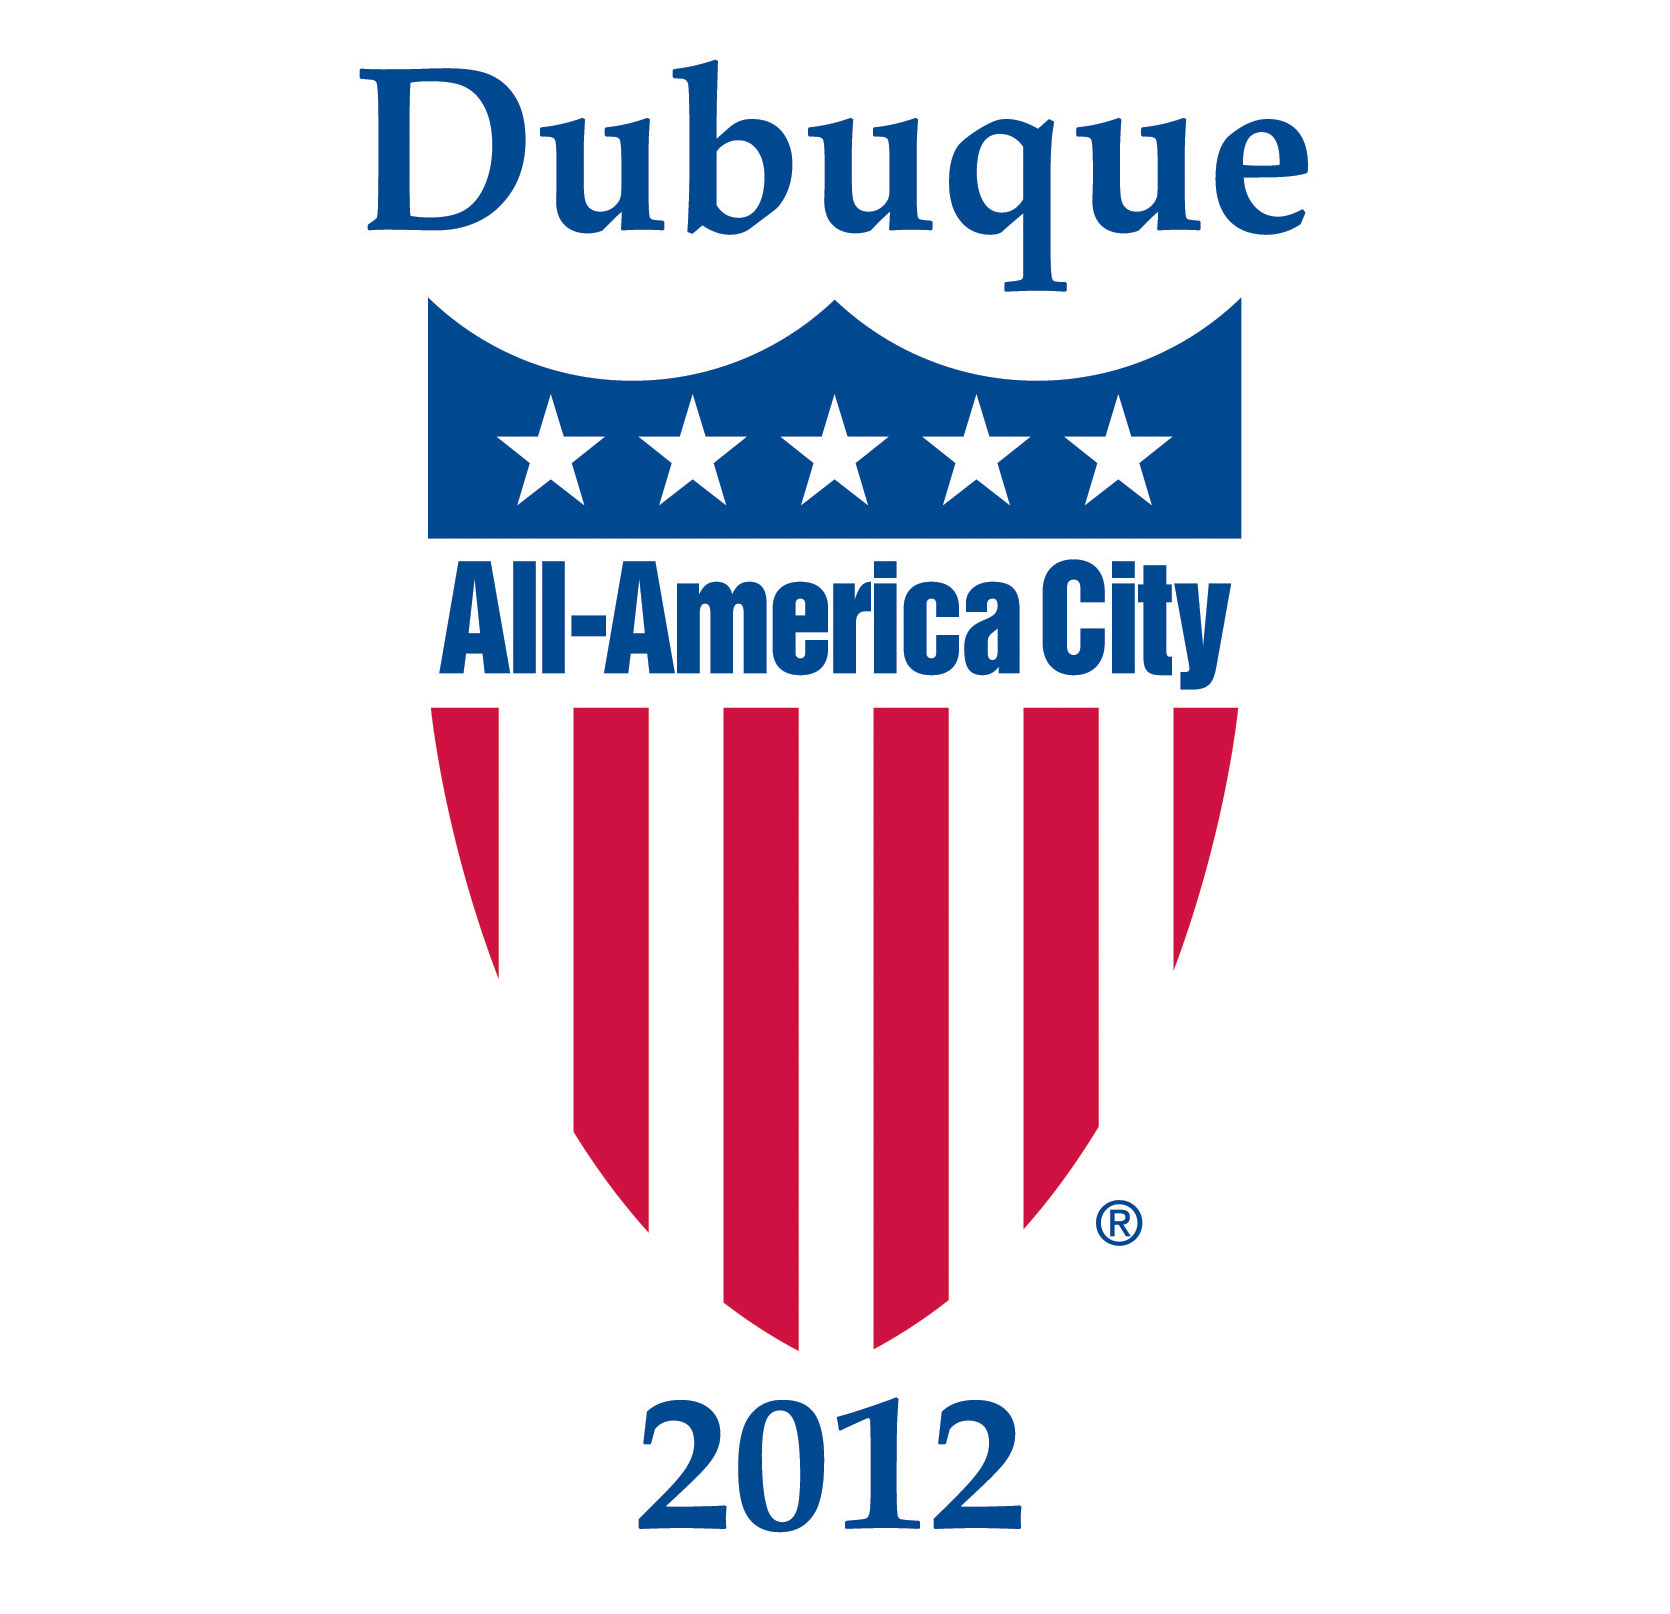 All-America City Winner 2012